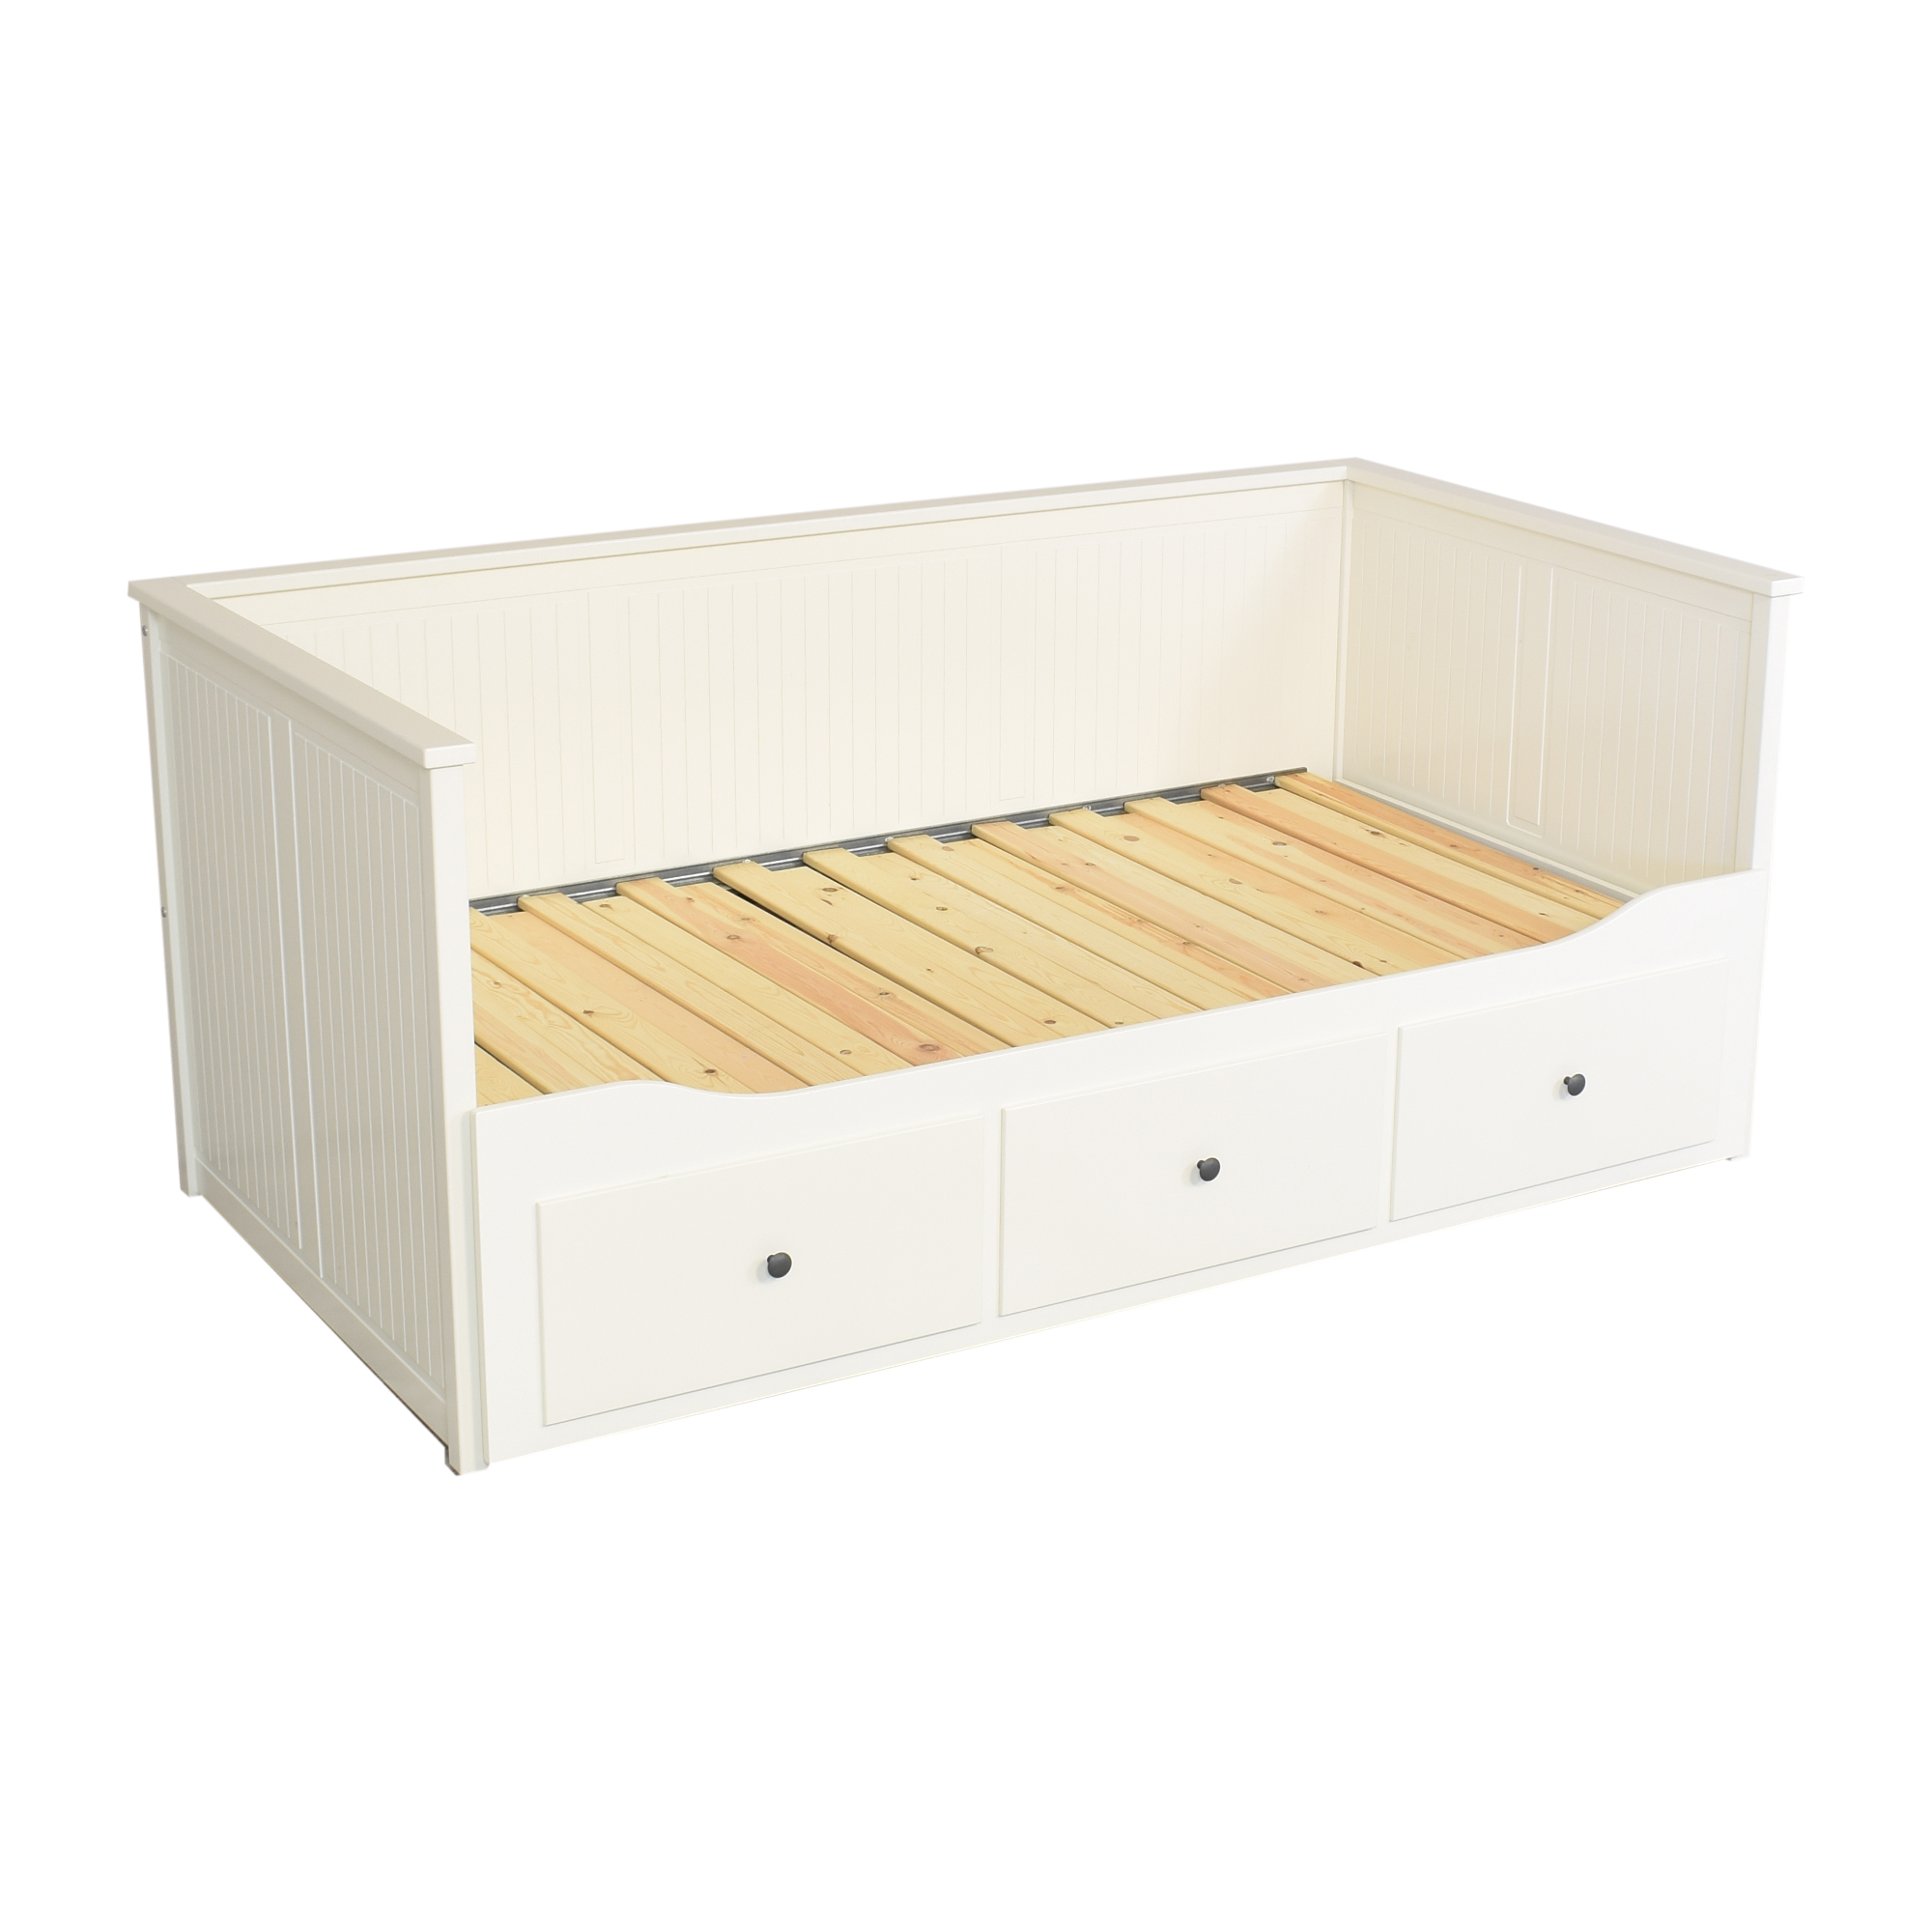 IKEA HEMNES Storage Daybed with Trundle / Bed Frames